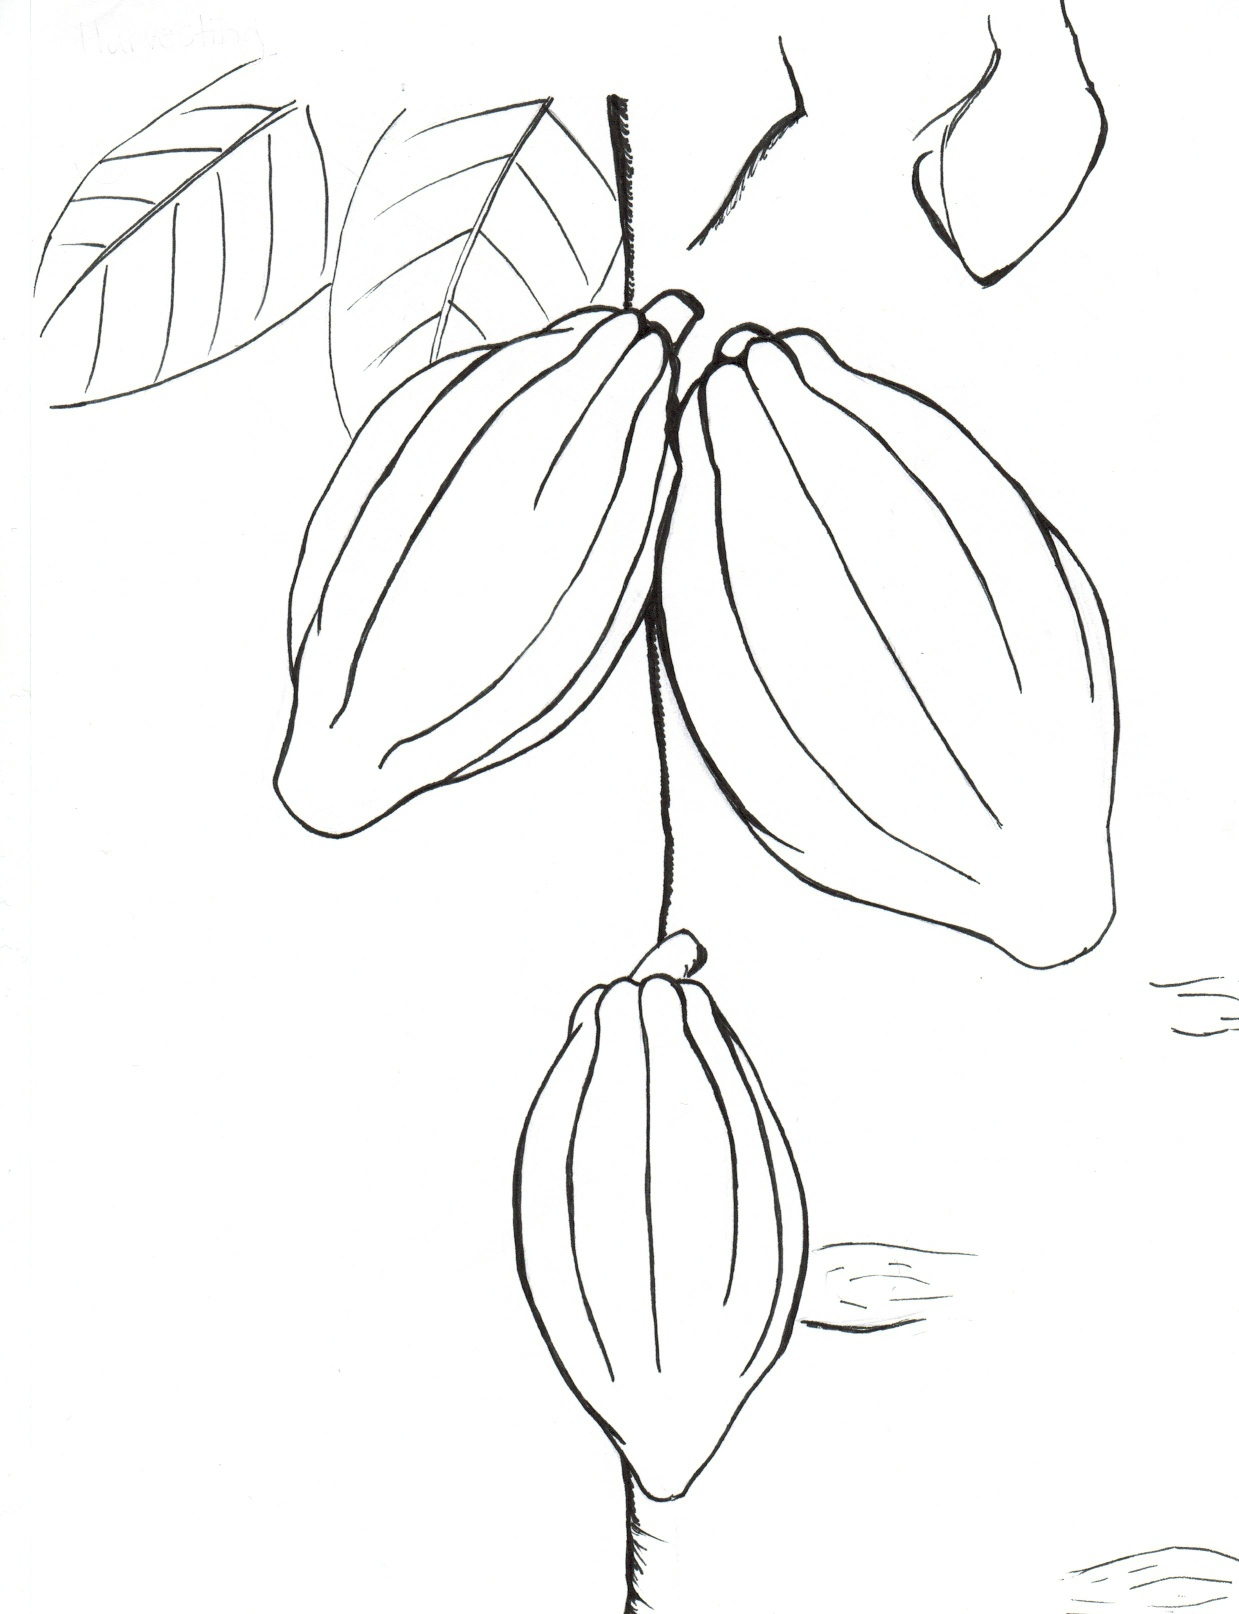 1239x1614 Belize Foundation For Research And Environmental Education Cacao